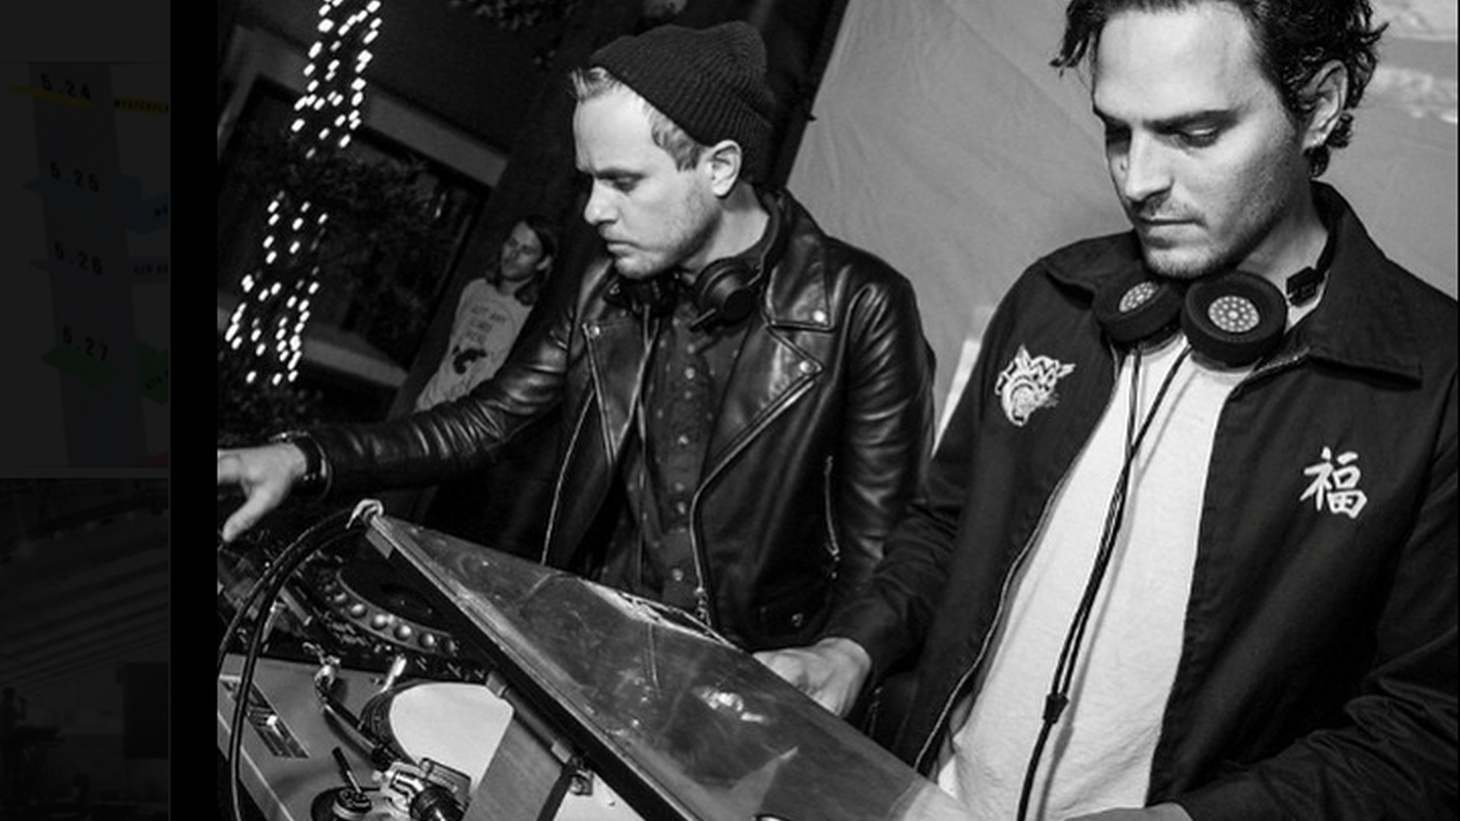 Venice Beach-based production duo Classixx invite their friends to the party on their June release, Faraway Reach.